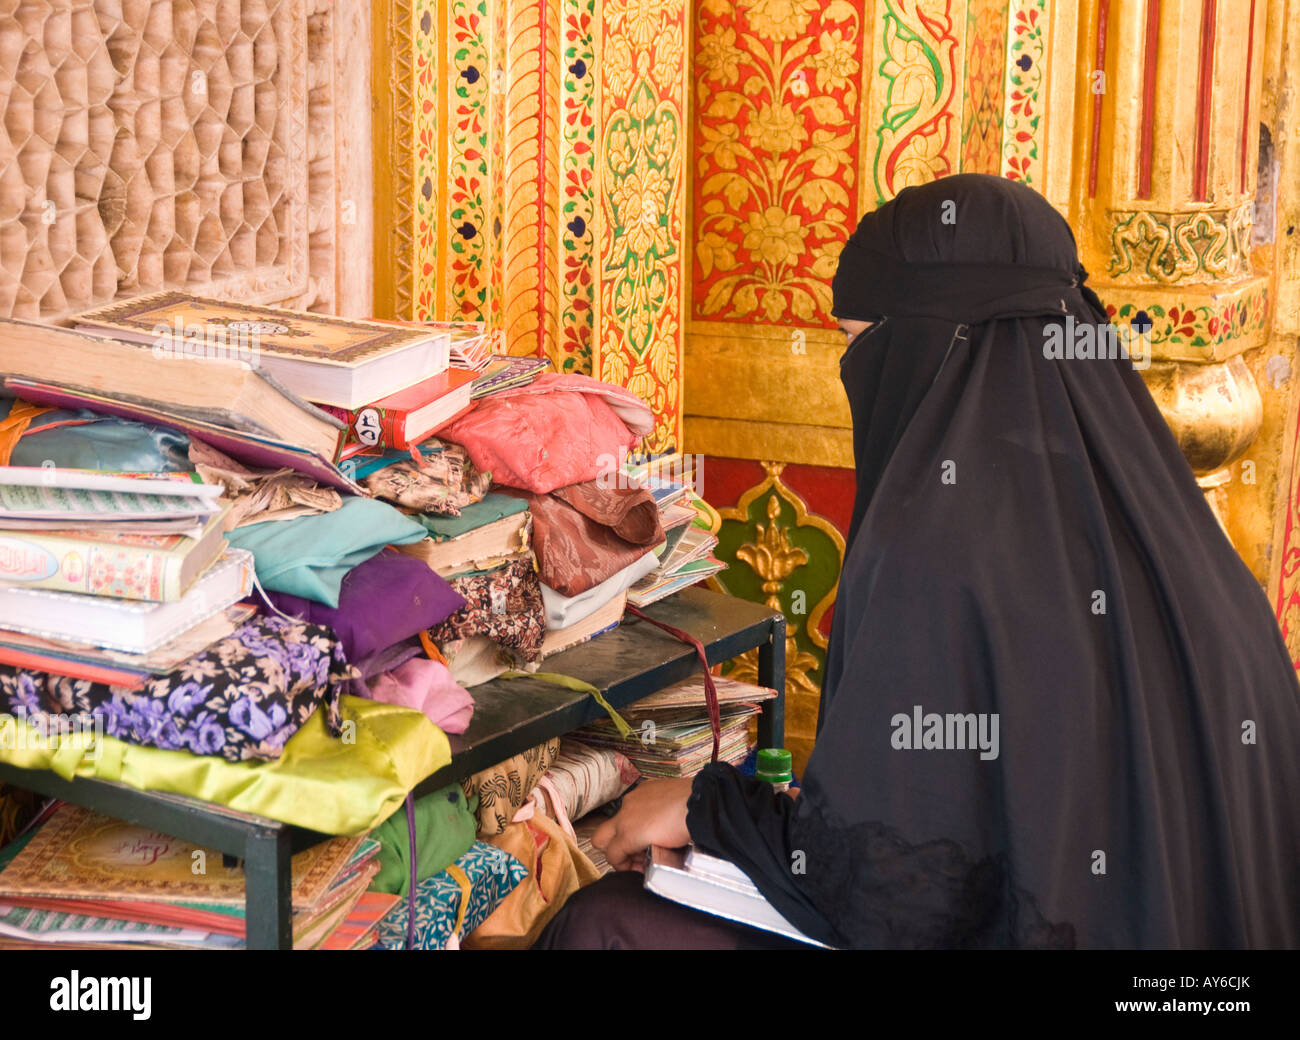 A woman reading from the Koran at a mosque - Stock Image